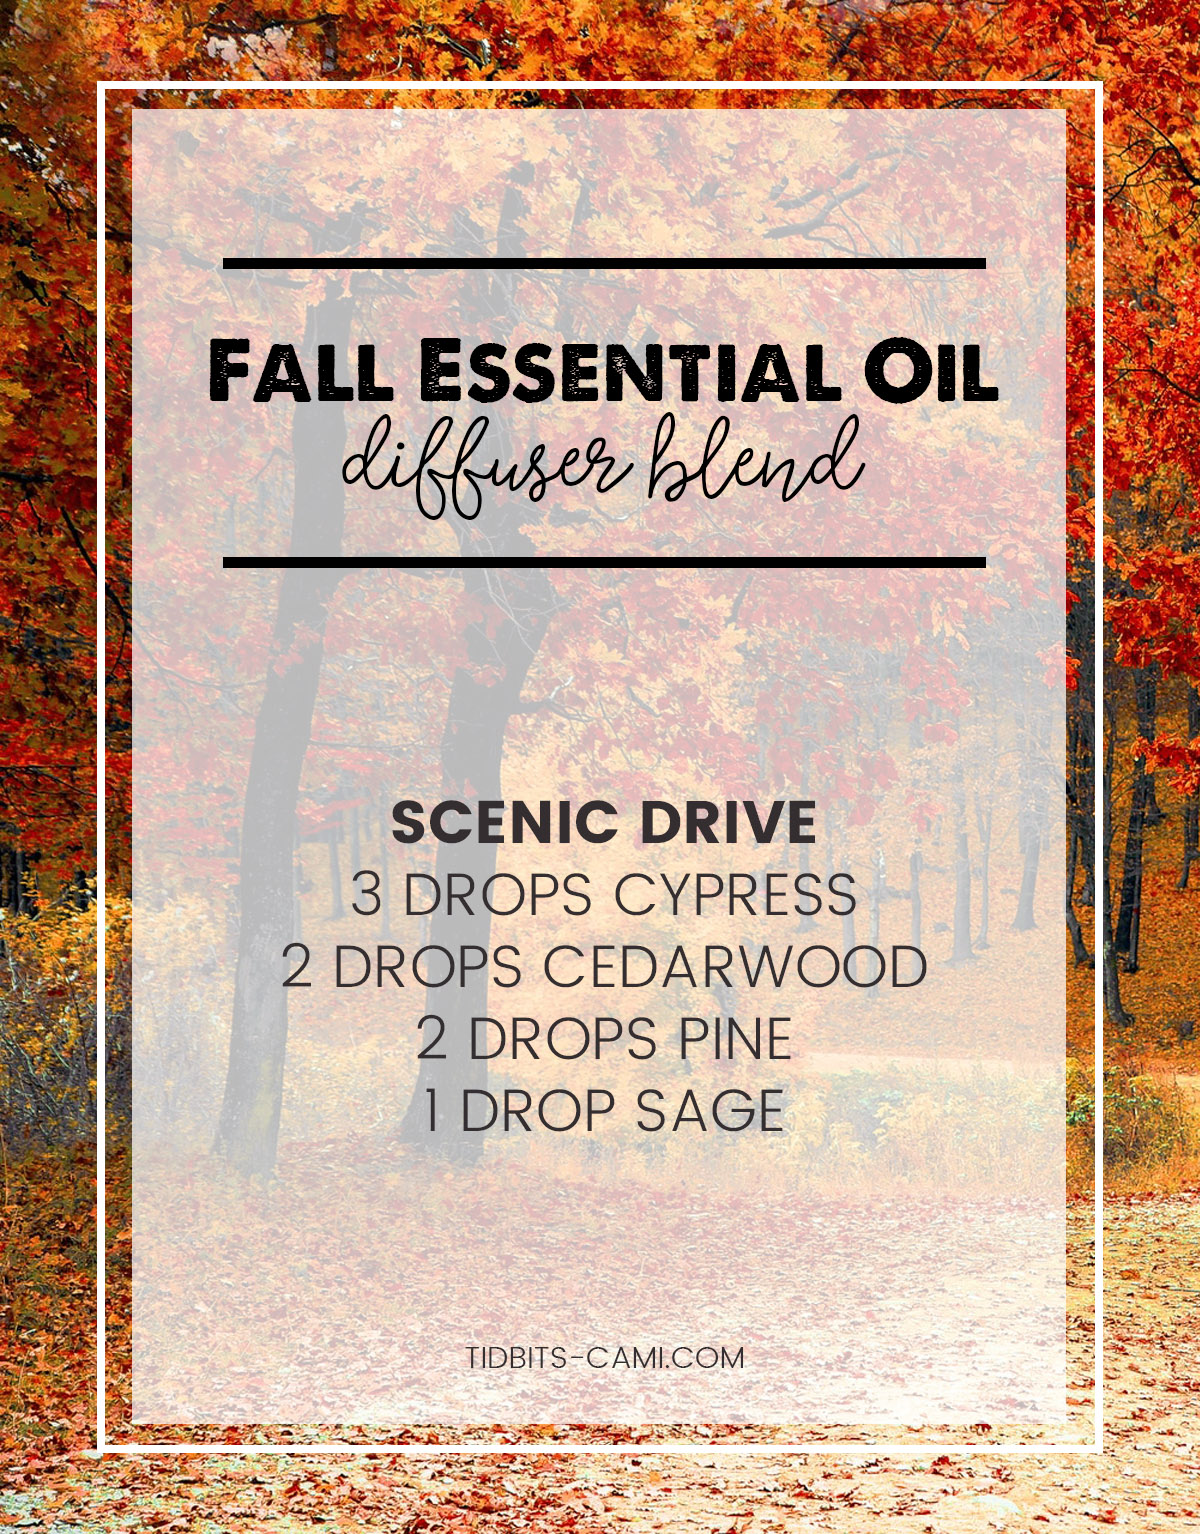 scenic drive essential oil diffuser blend